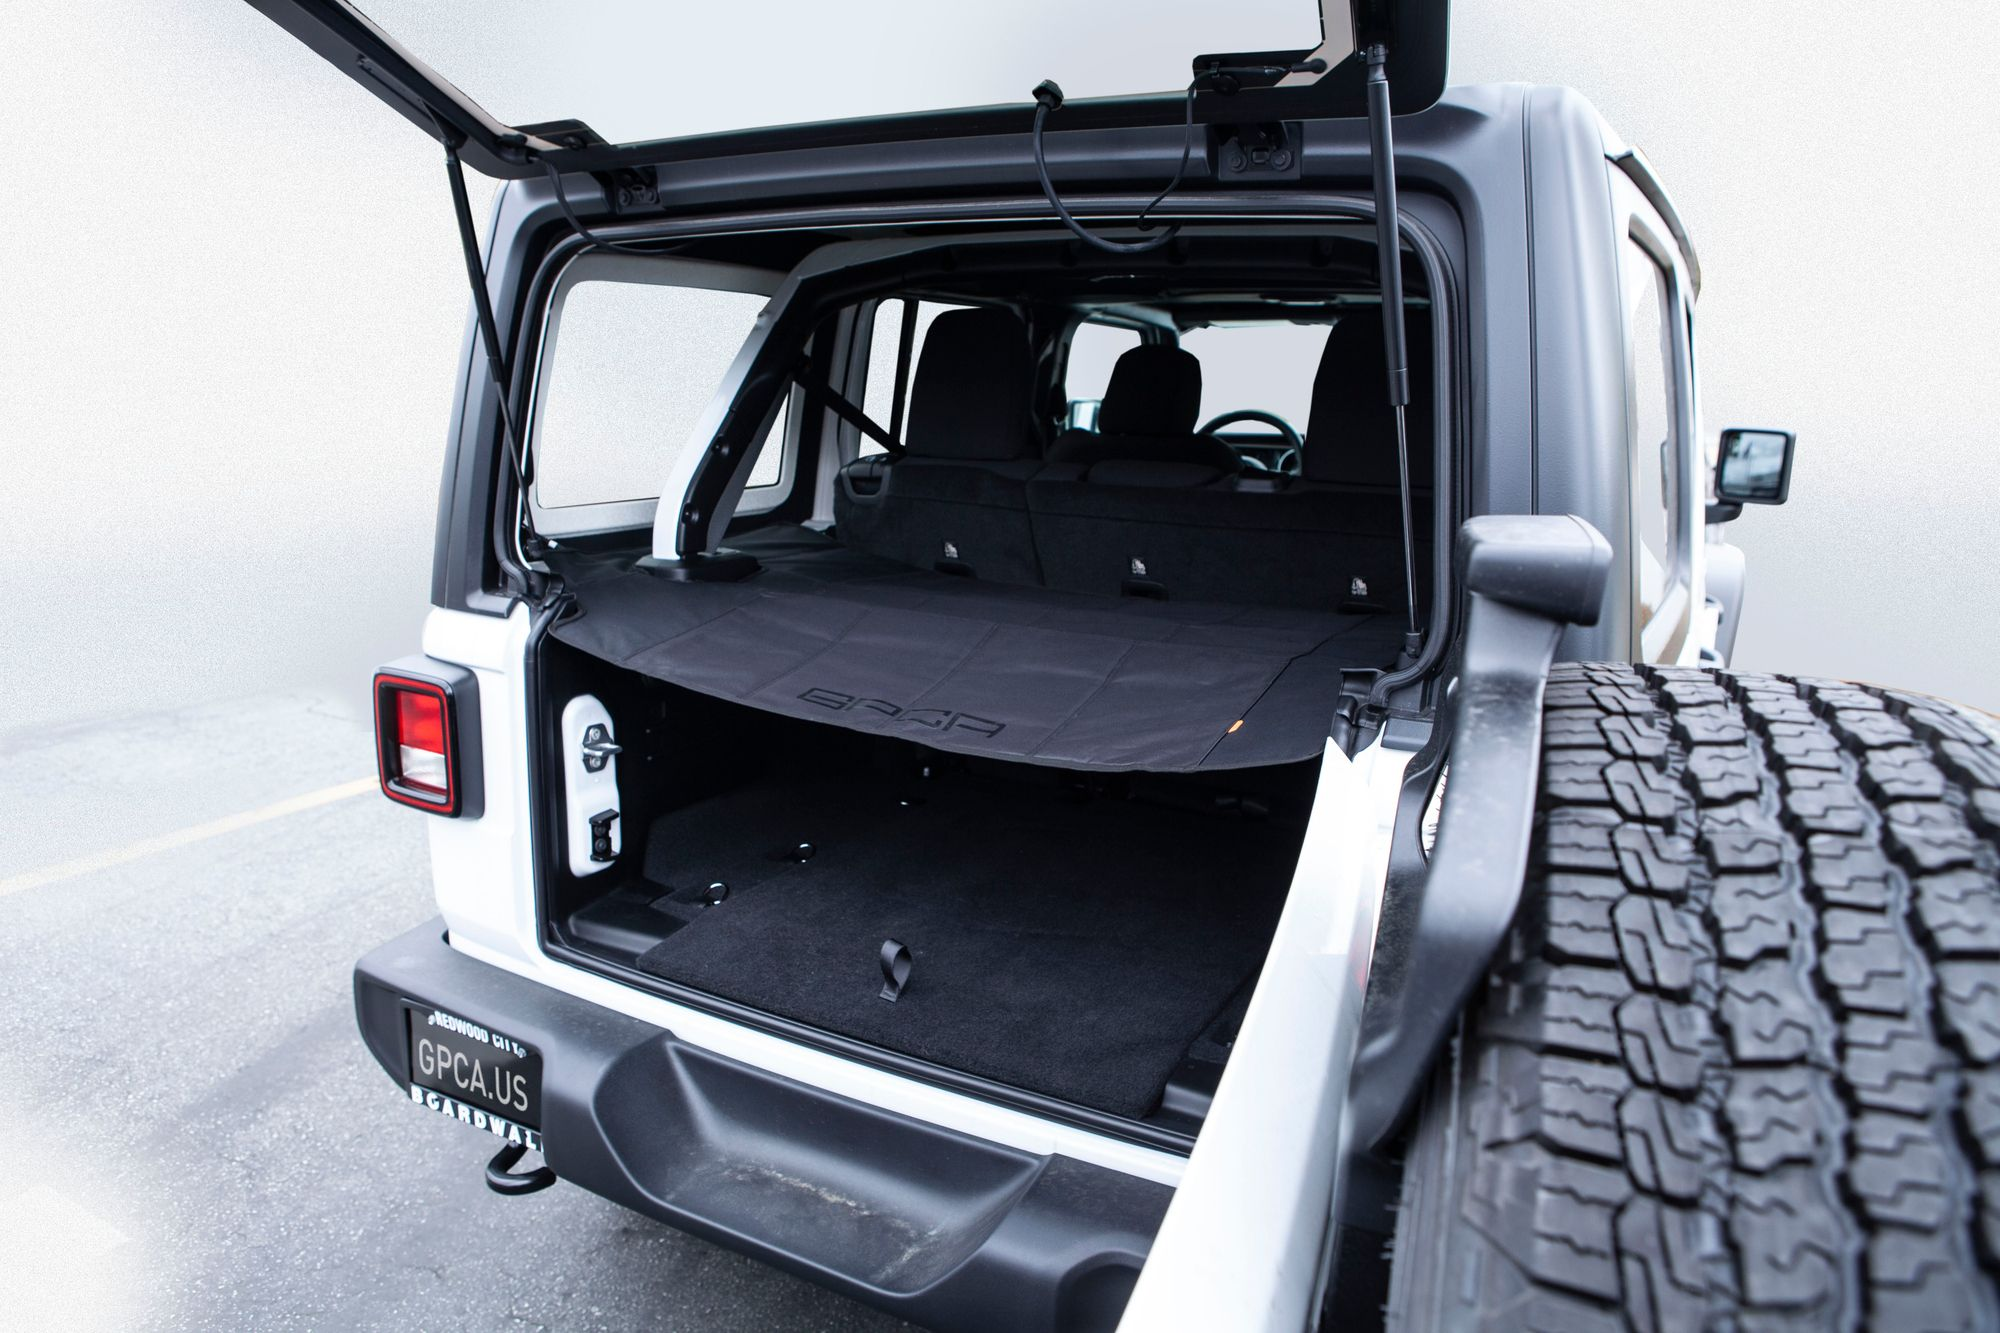 Jeep Wrangler Jl Unlimited Cargo Cover Lite With Images Cargo